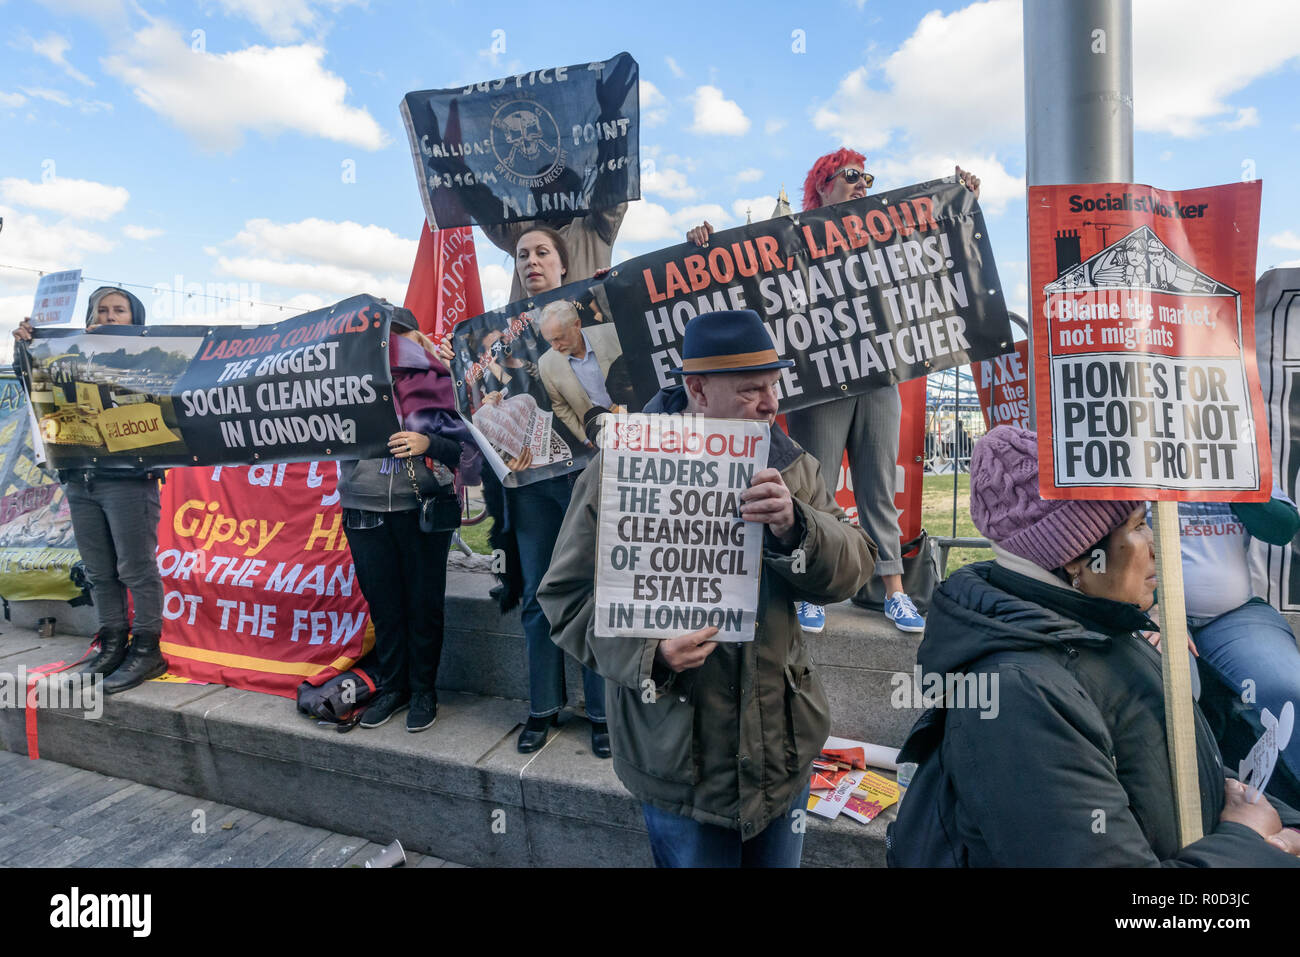 London, UK. 3rd November 2018. Class War supporters came to the 'No Demolitions Without Permission' housing protest at City Hall with banners declaring that Labour Councils were the biggest social cleansers in London and 'Labour, Labour Home Snatchers! Even Worse Than Maggie Thatcher', pointing out that it was largely Labour councils who were demolishing council estates so that developers could replace council houses with large numbers of properties sold at high market prices and a miserably small number of homes at social rent, promoting schemes which cut by thousands the number of council ho Stock Photo